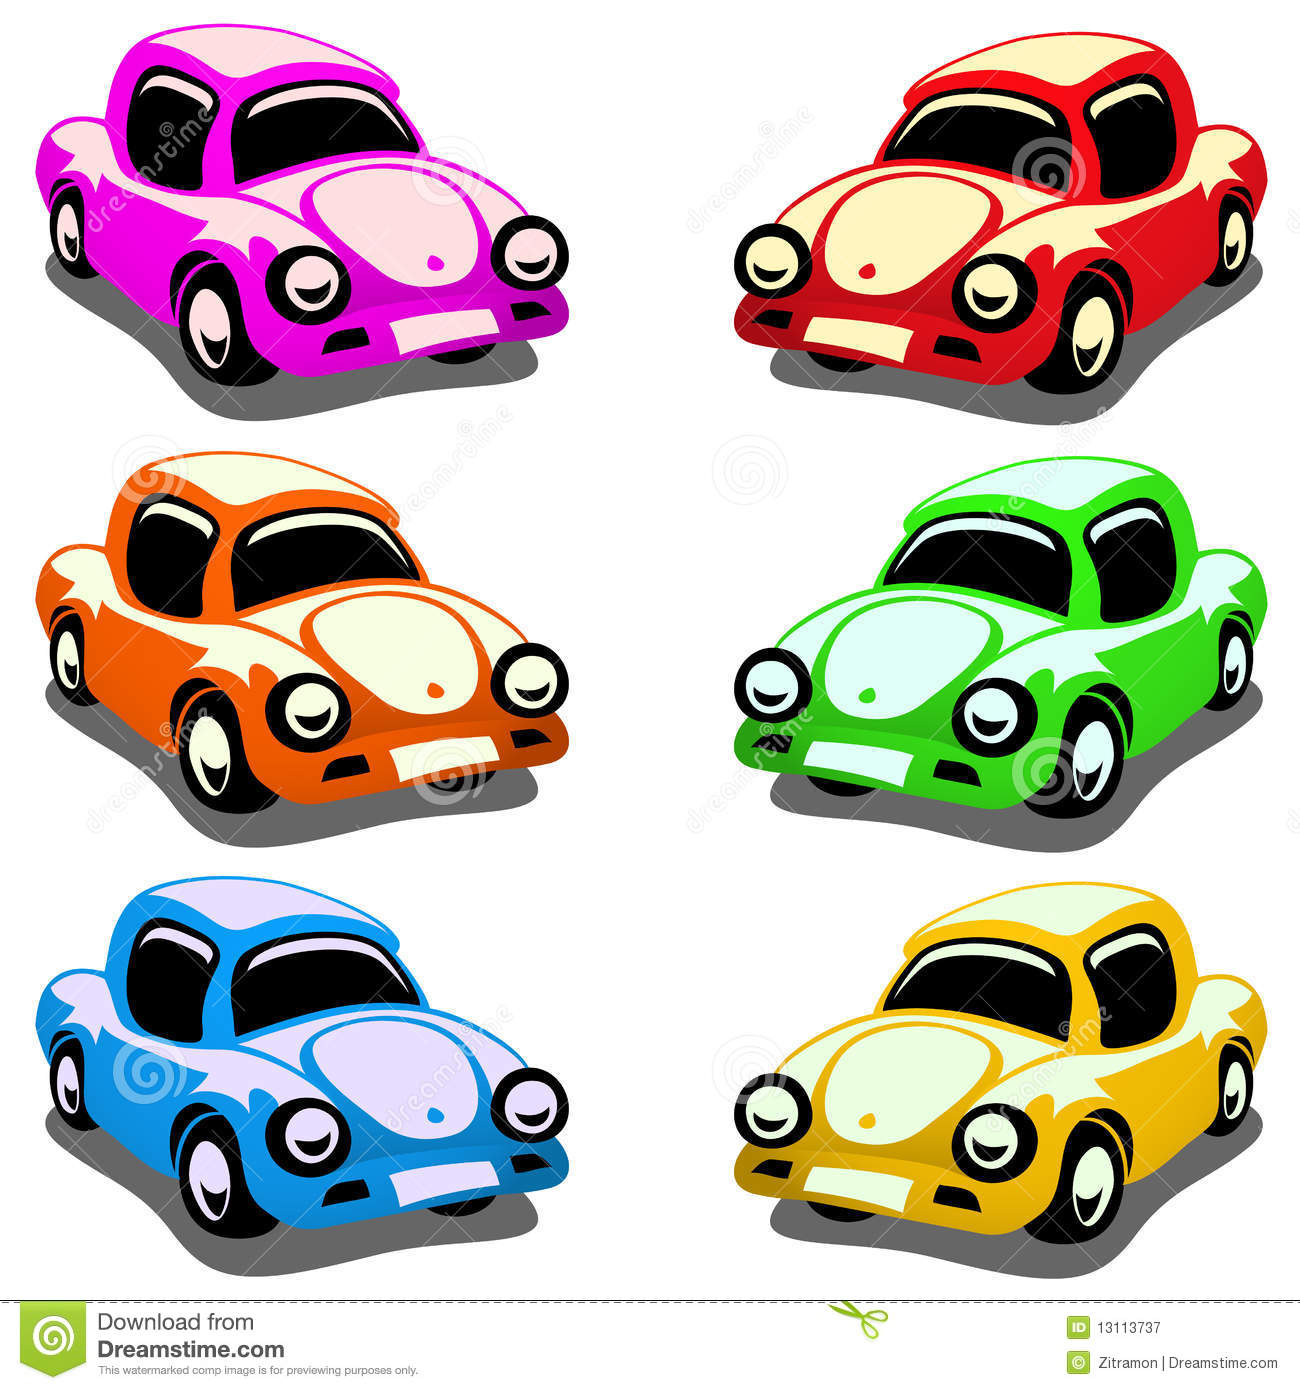 Toy Cars Clip Art Images & Pictures - Becuo